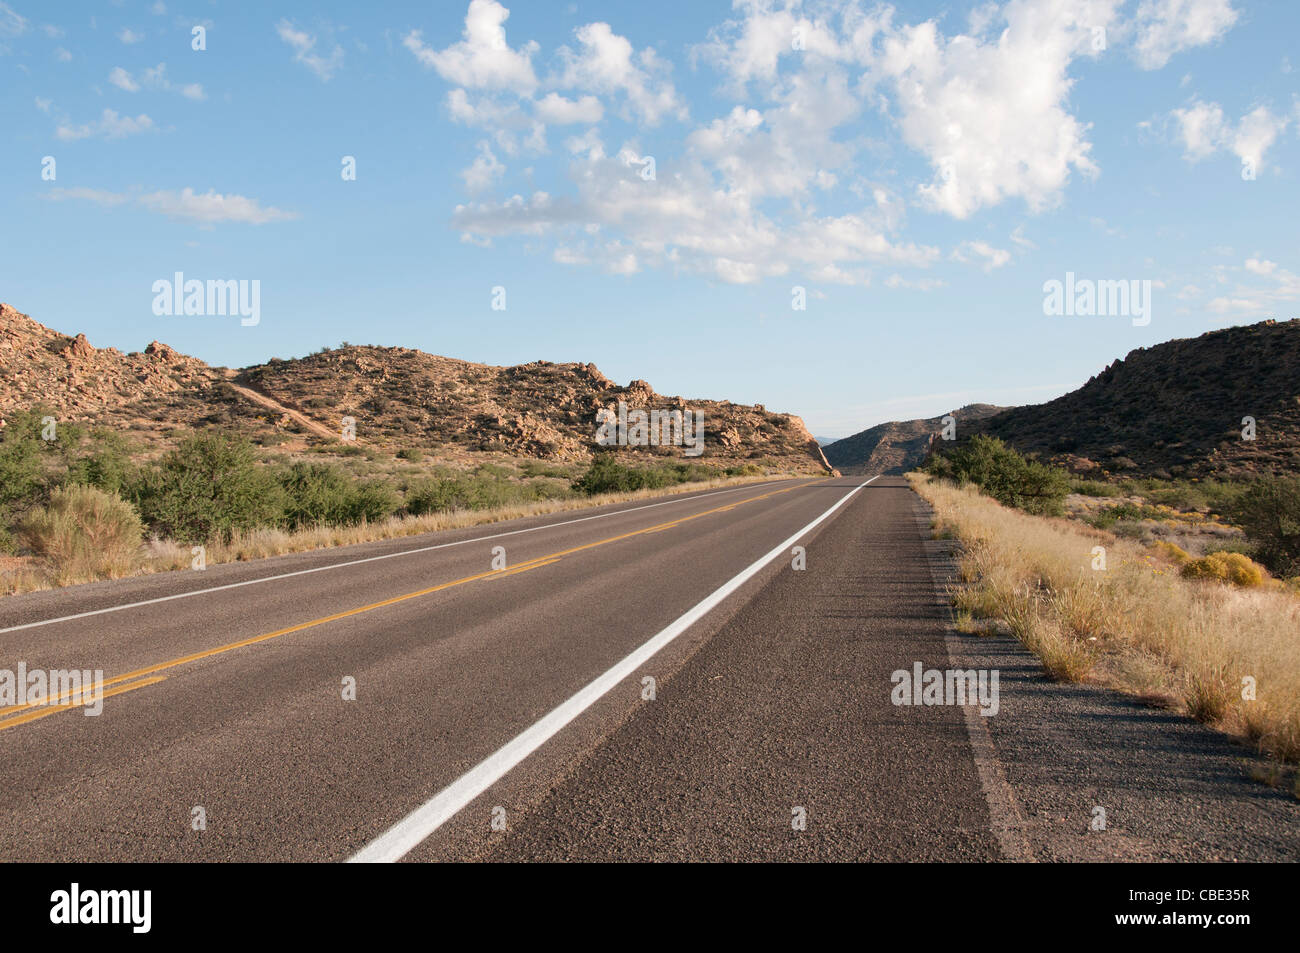 Scenic empty bending mountain road in the hills of Arizona United States - Stock Image